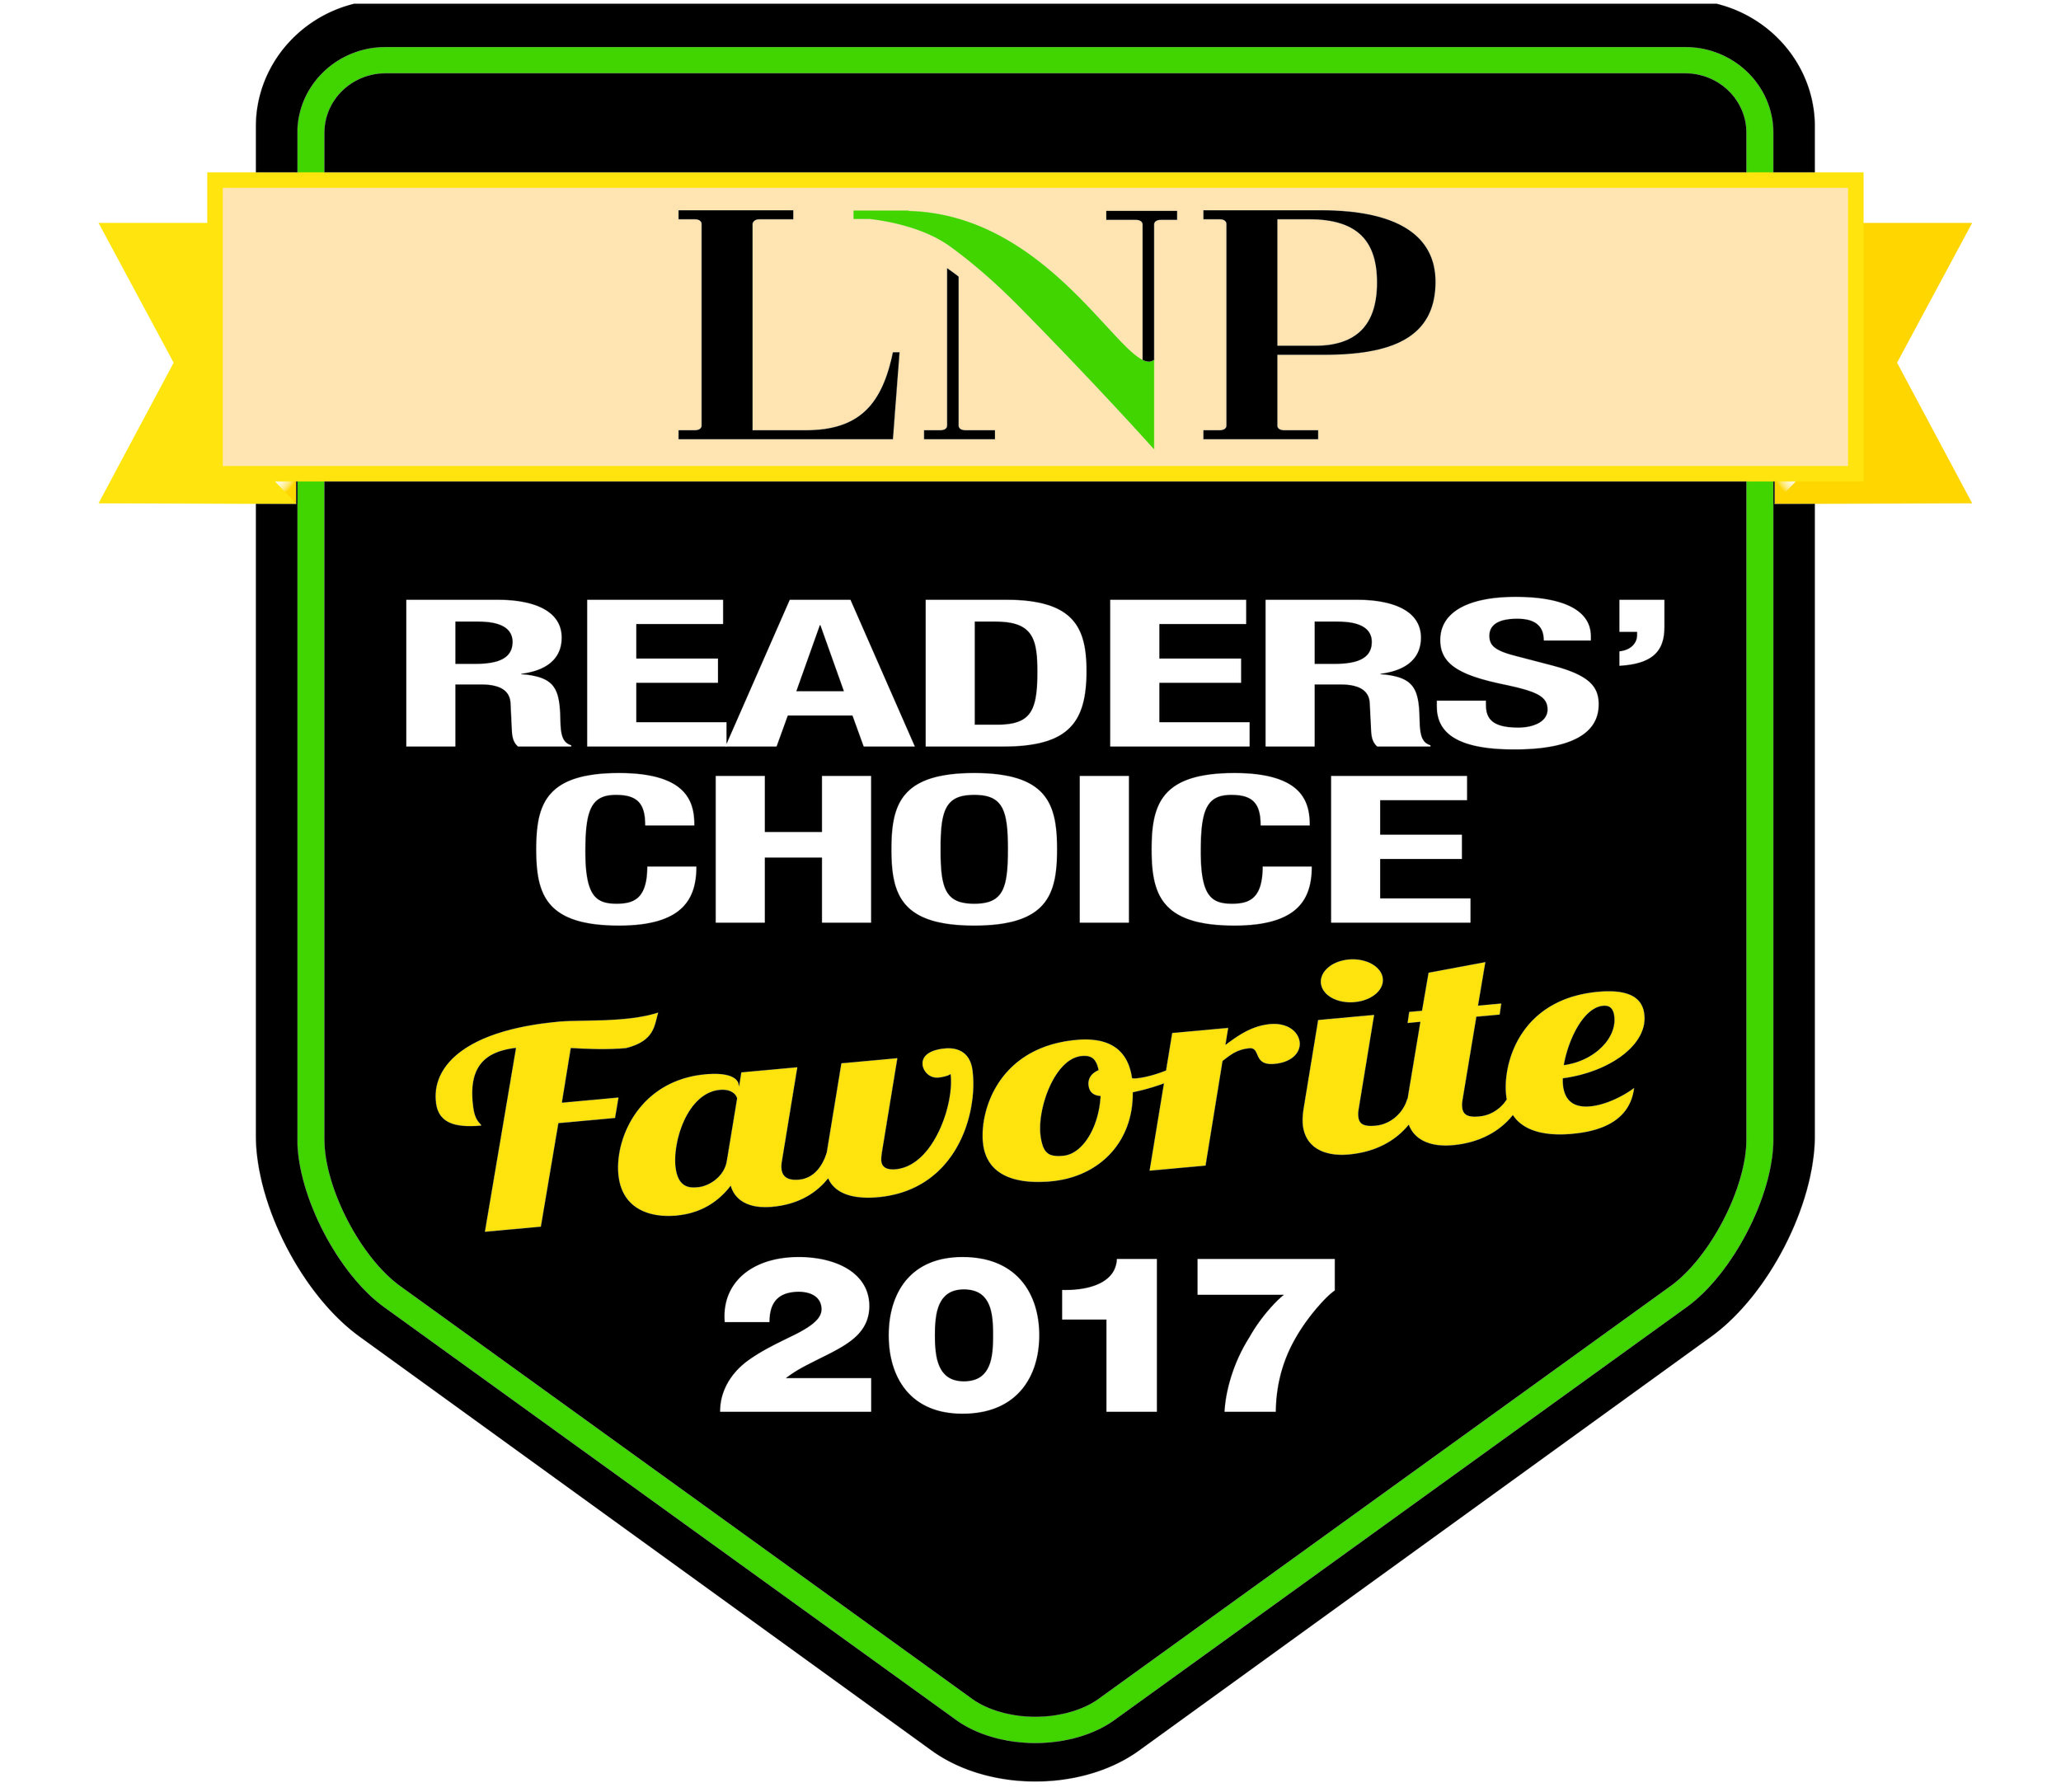 ReadersChoice_Favorite_LOGO_2017 copy.jpg